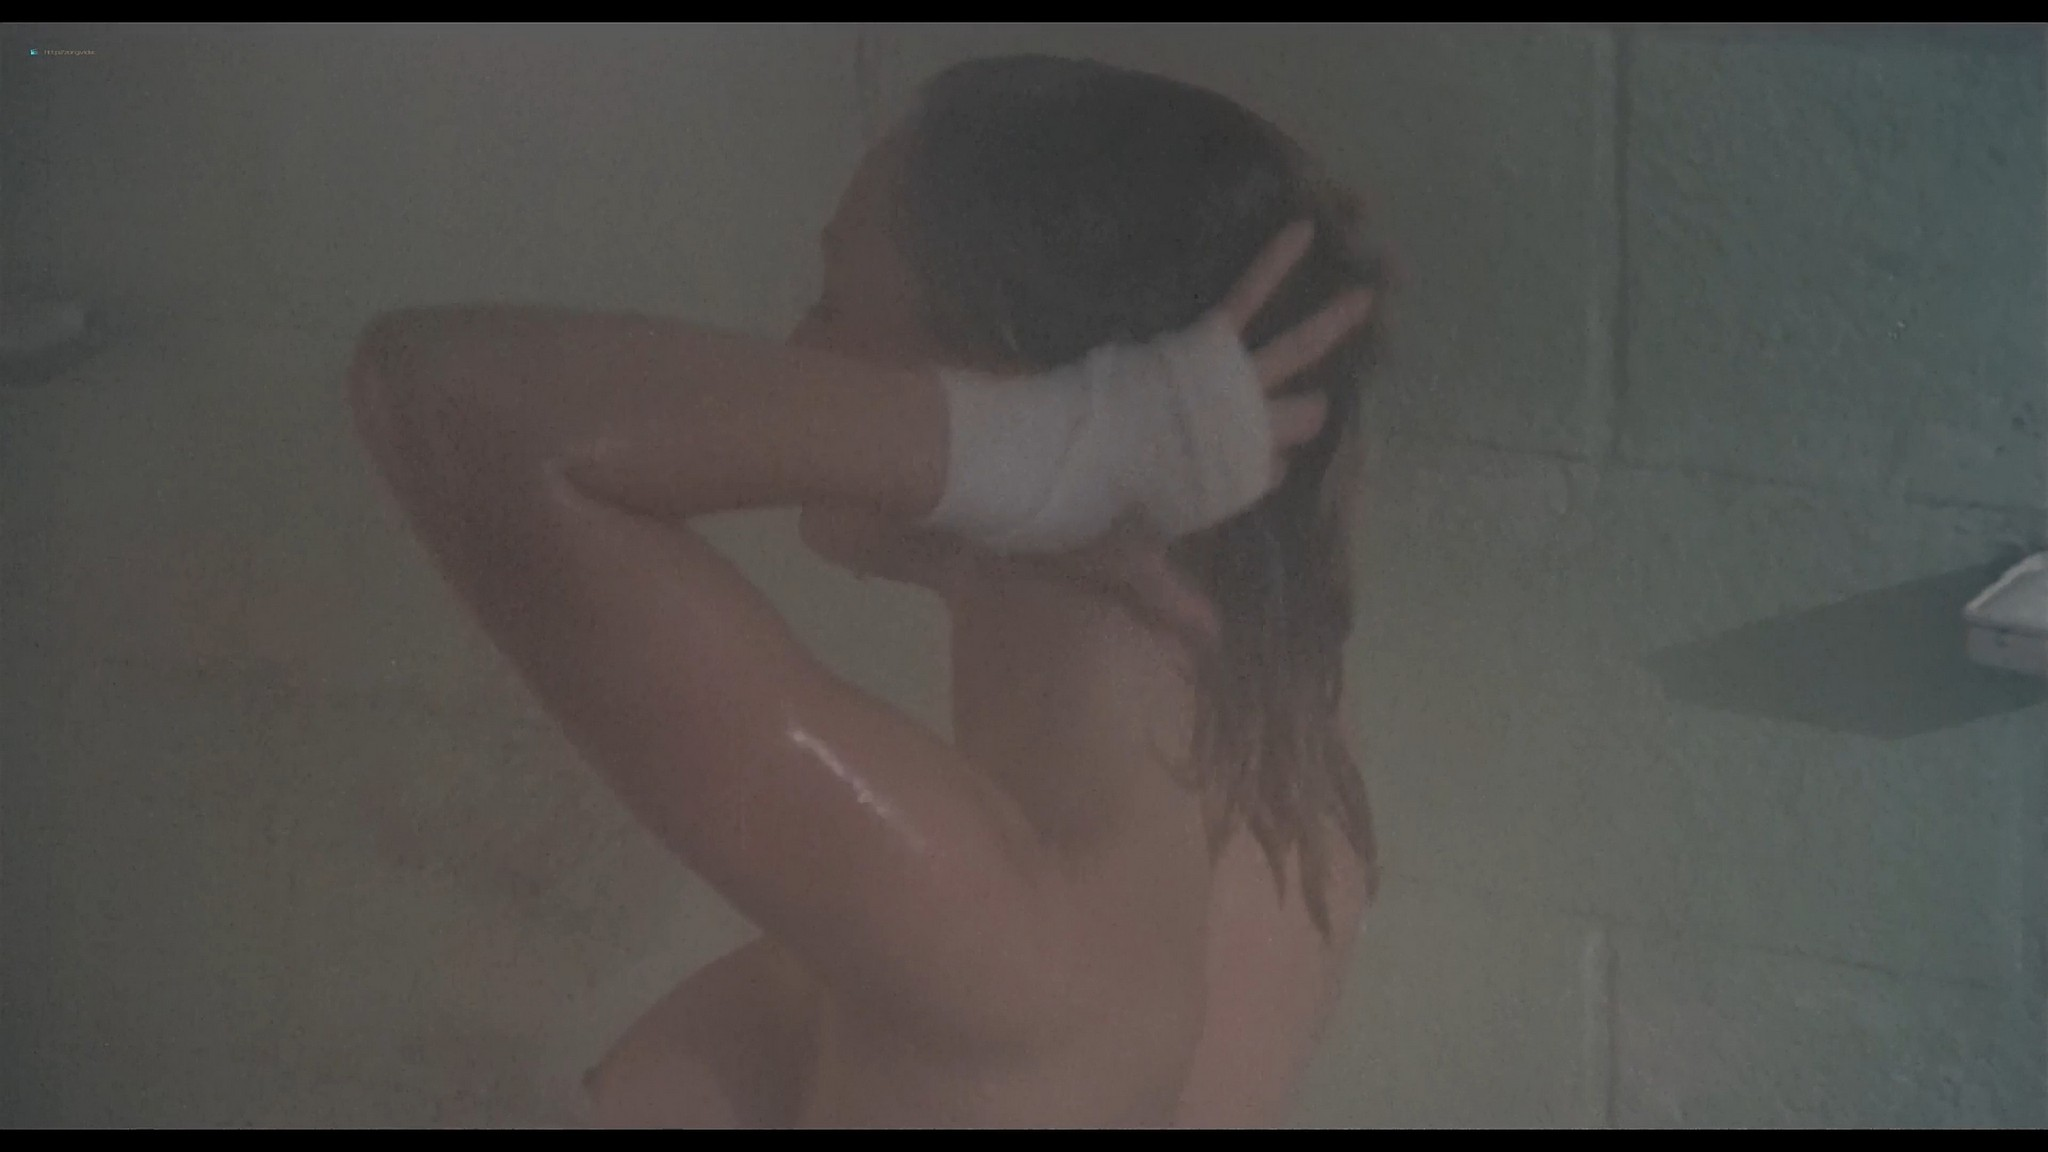 Shari Shattuck nude in shower Lisa London and others nude The Naked Cage 1986 HD 1080p BluRay 13